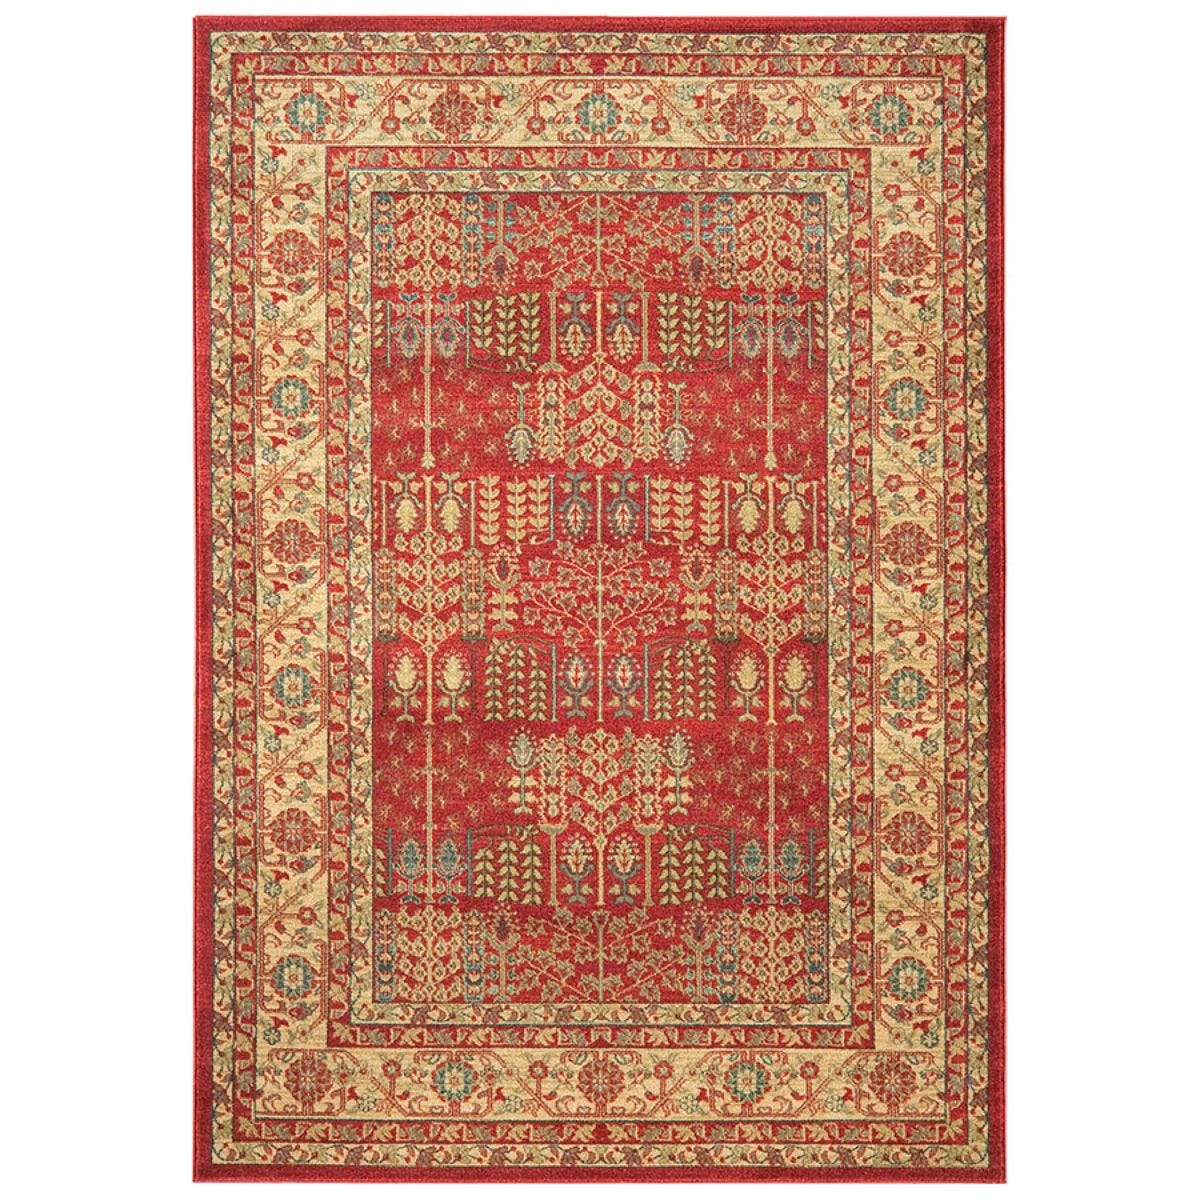 Asiatic Windsor Rug, 240 x 340cm - Multi